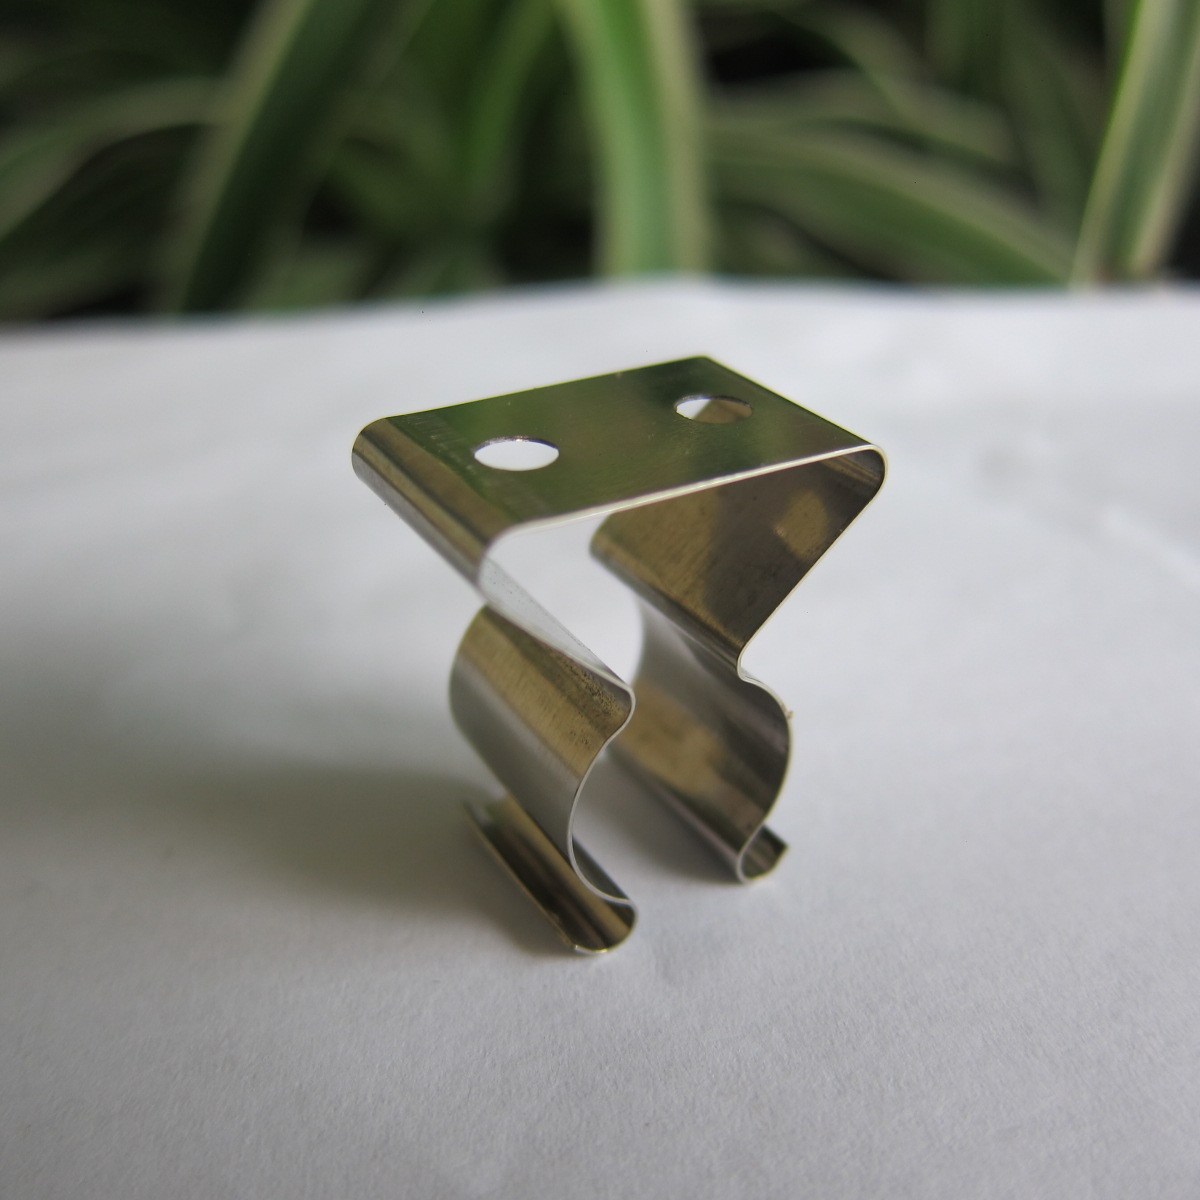 Stainless Steel Spring Contact Ceiling Lamp Mounting Bracket T5